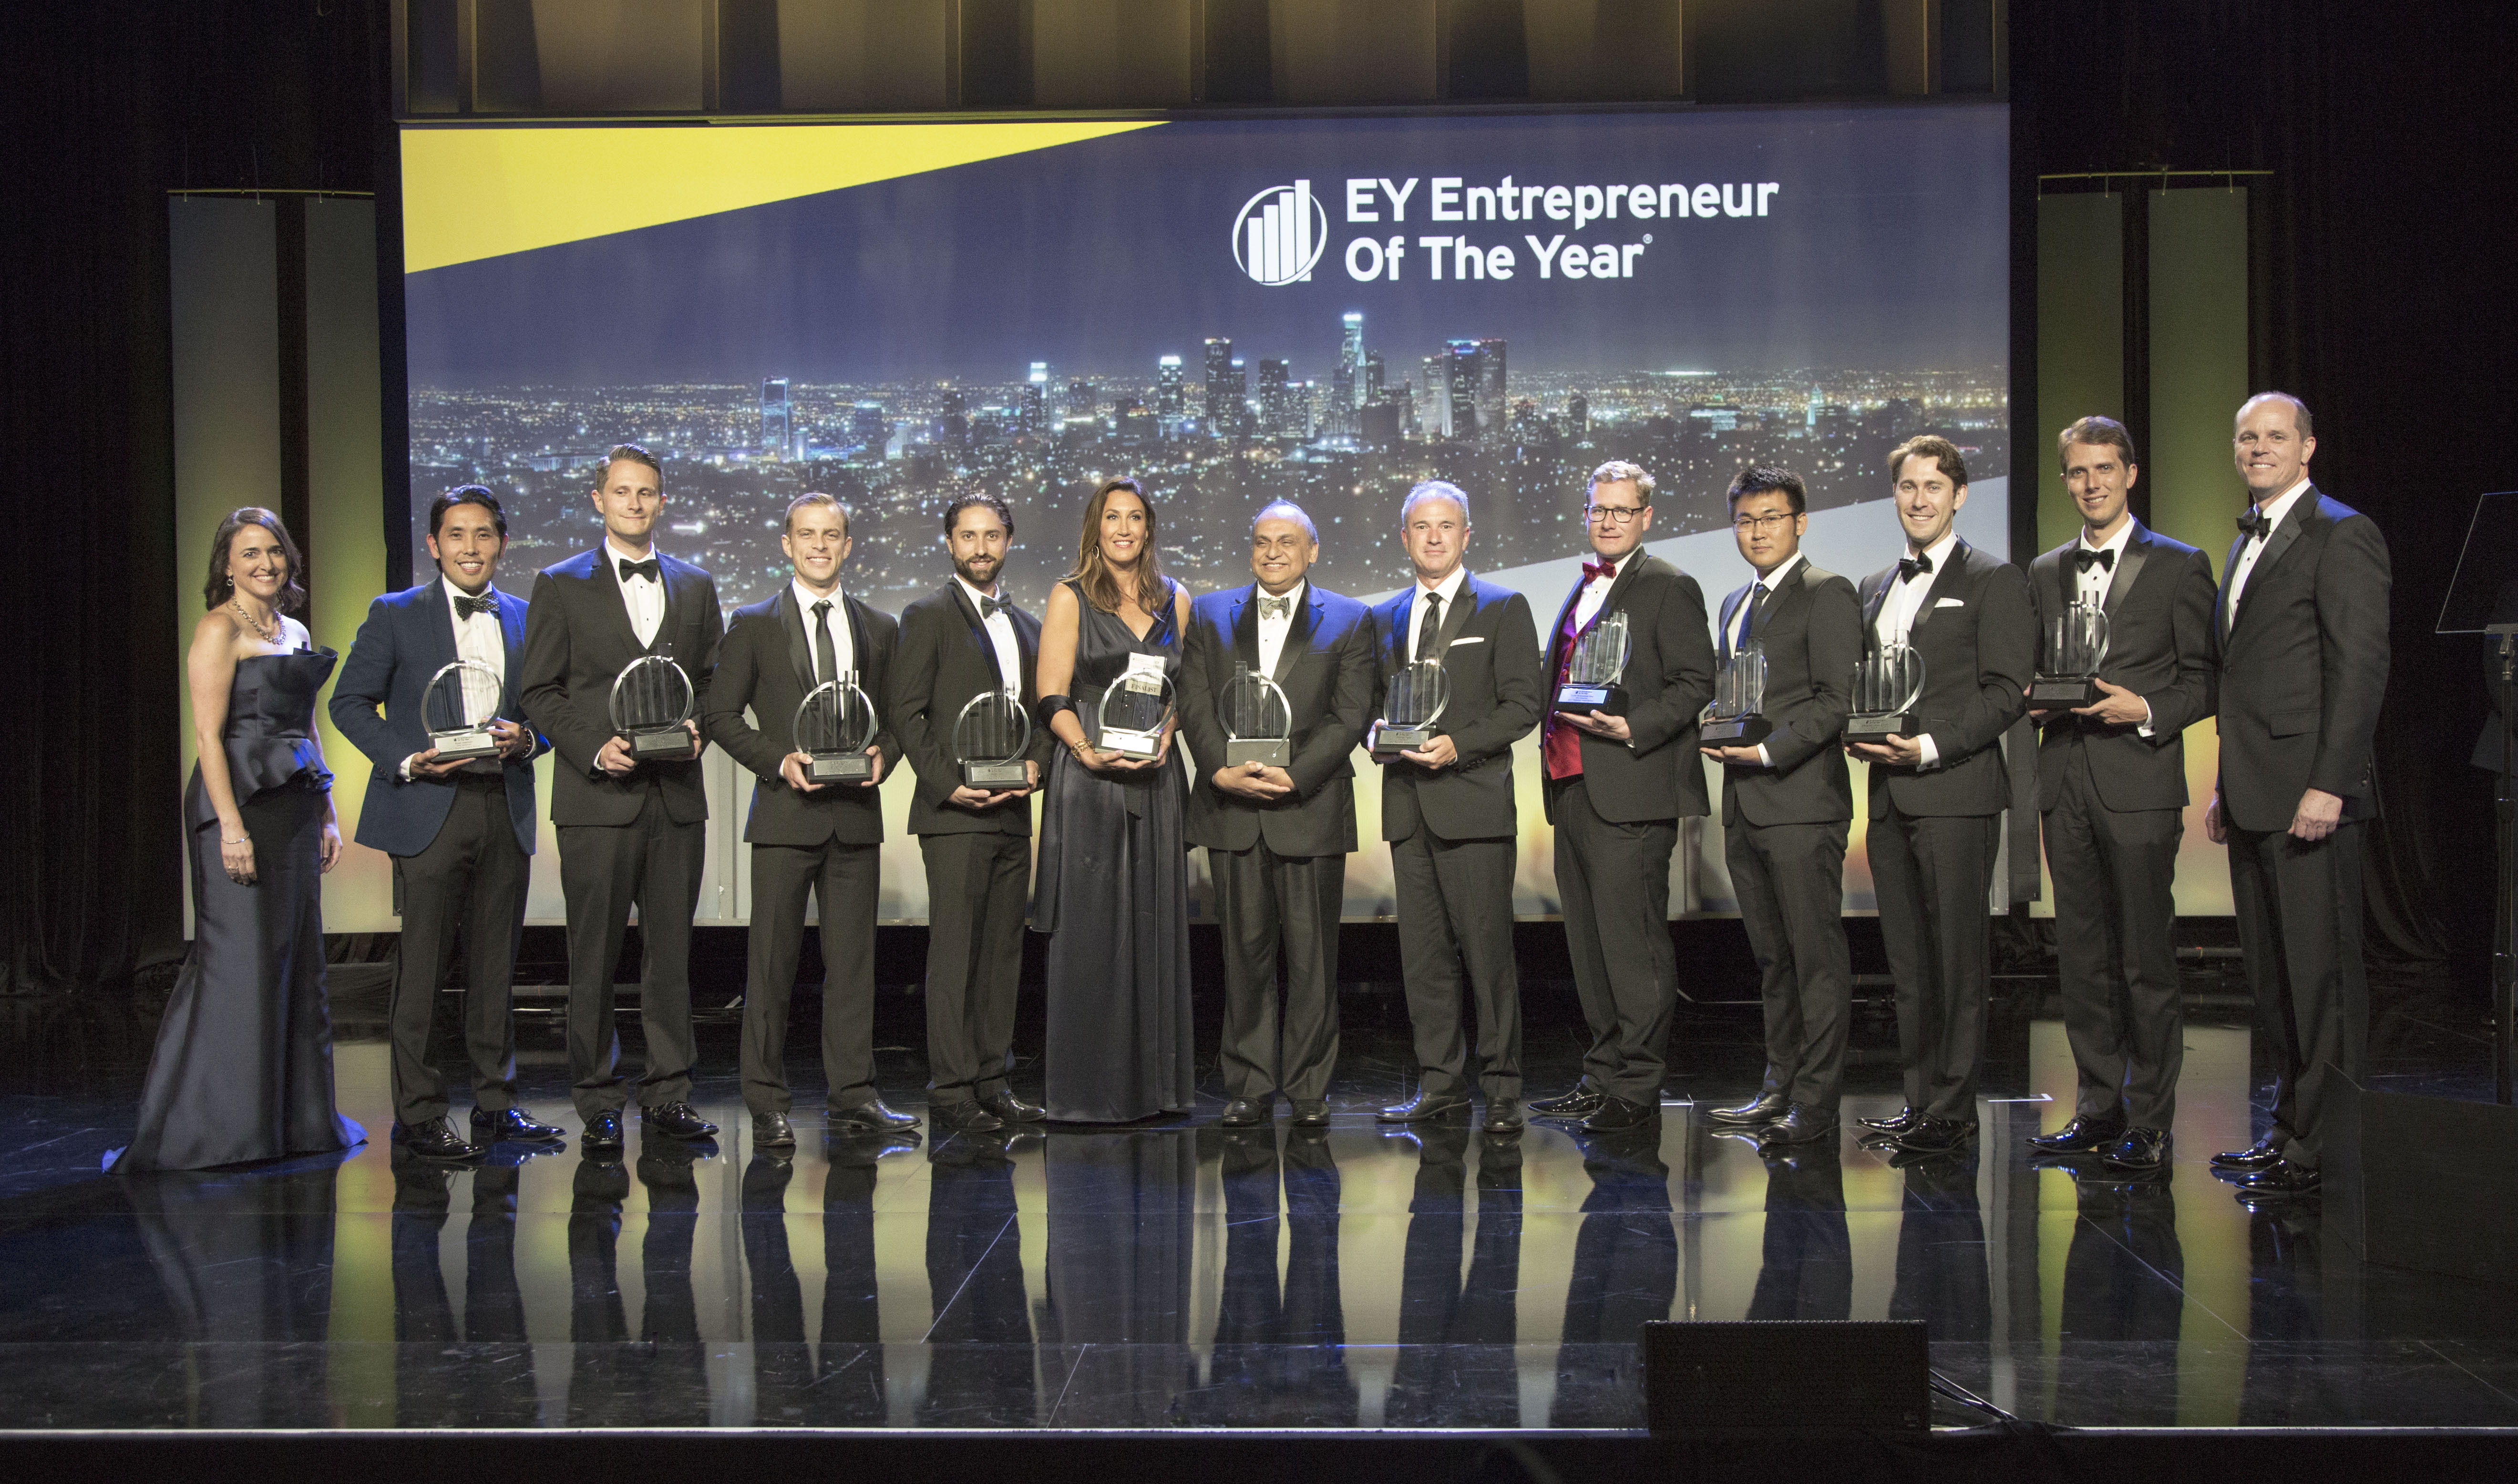 2017 Entrepreneur of the Year Greater Los Angeles Region winners (Photo: Business Wire)